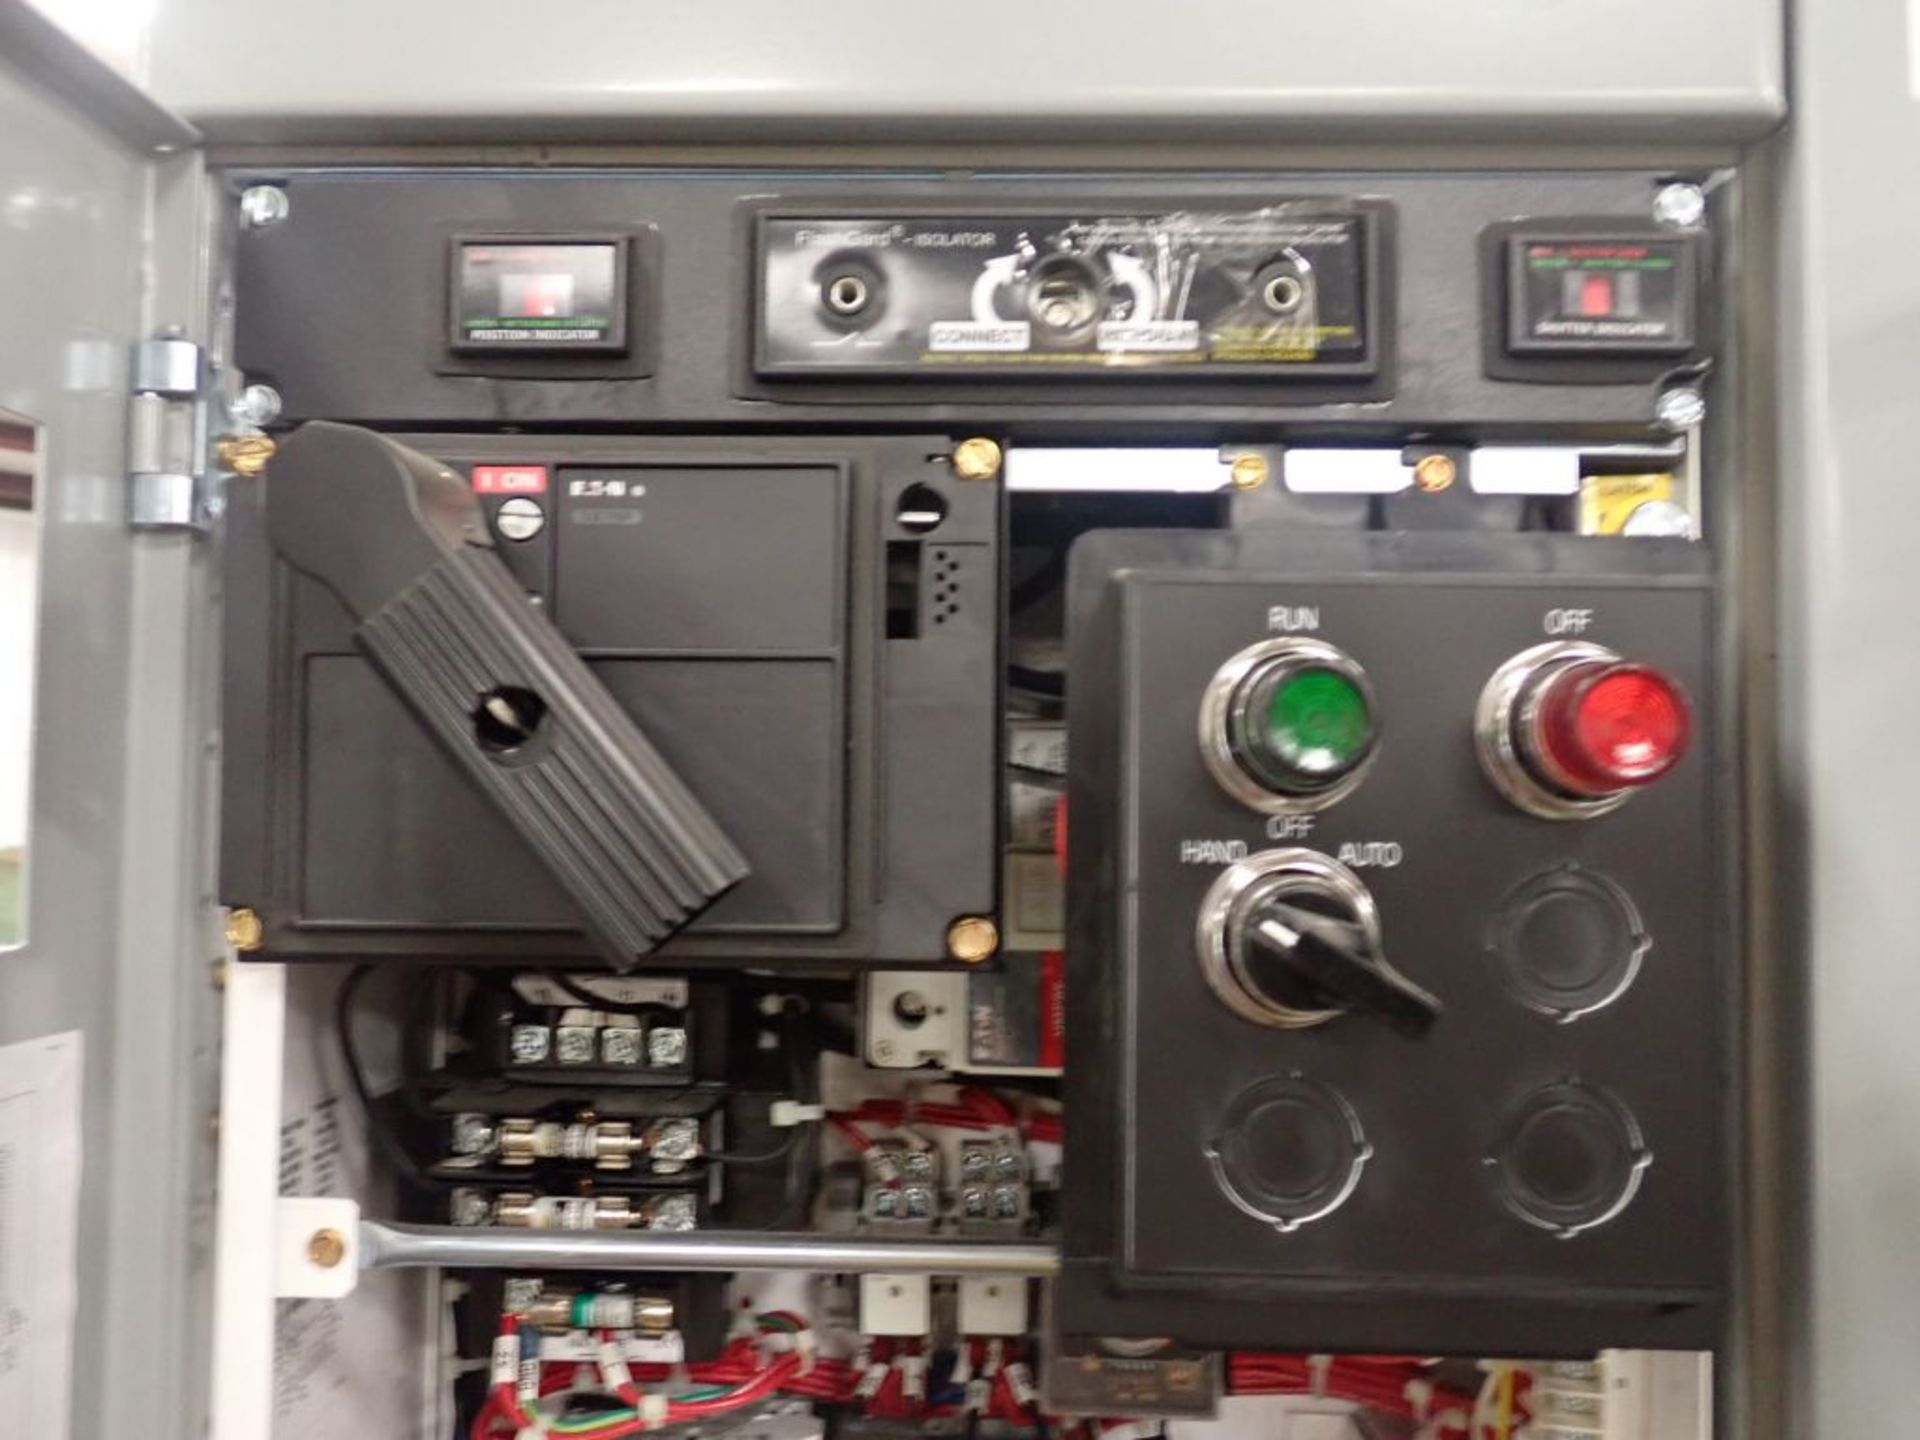 Eaton Freedom 2100 Series Motor Control Center   (2) F206-15A-10HP; (2) SVX900-50A, with Eaton AF - Image 19 of 48